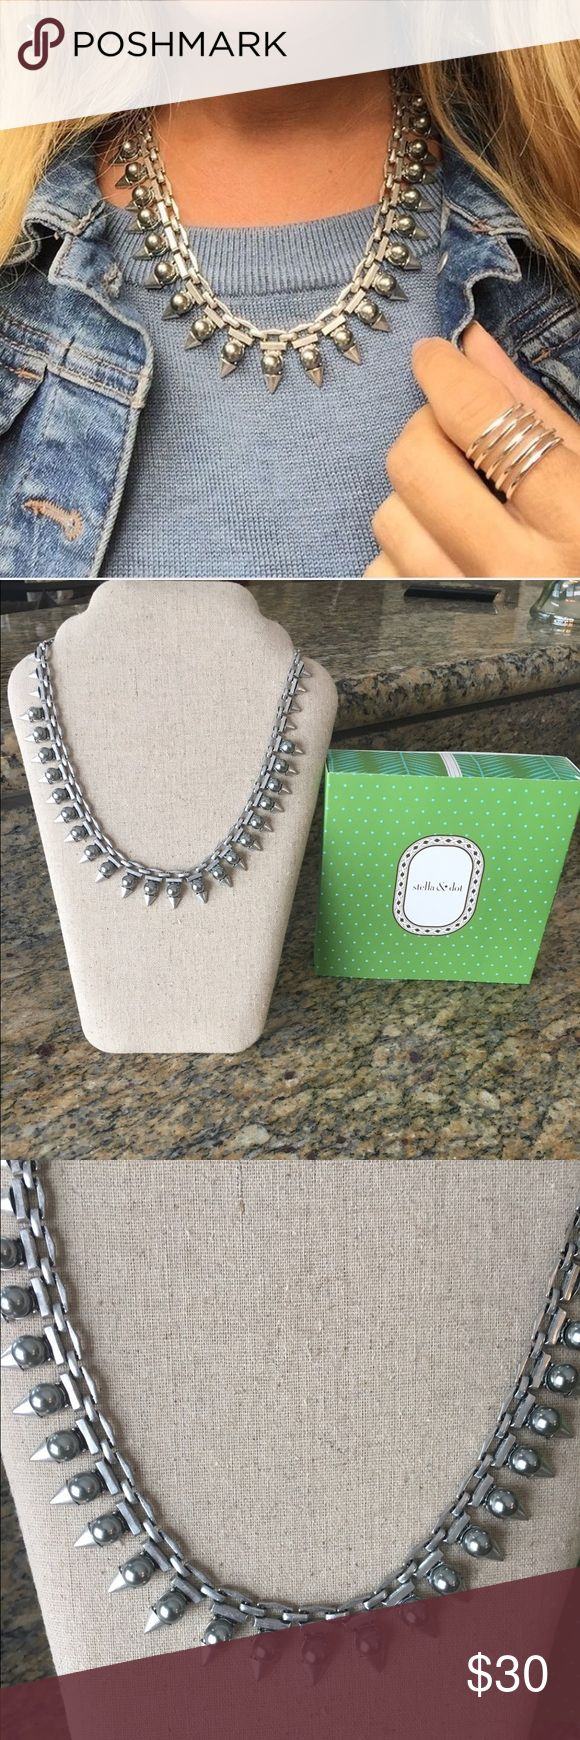 New With Box Stella and Dot Lynx Pearl Necklace Super chic, Super Edgy New In Box Stella and Dot Lynx Pearl Necklace. Stella & Dot Jewelry Necklaces